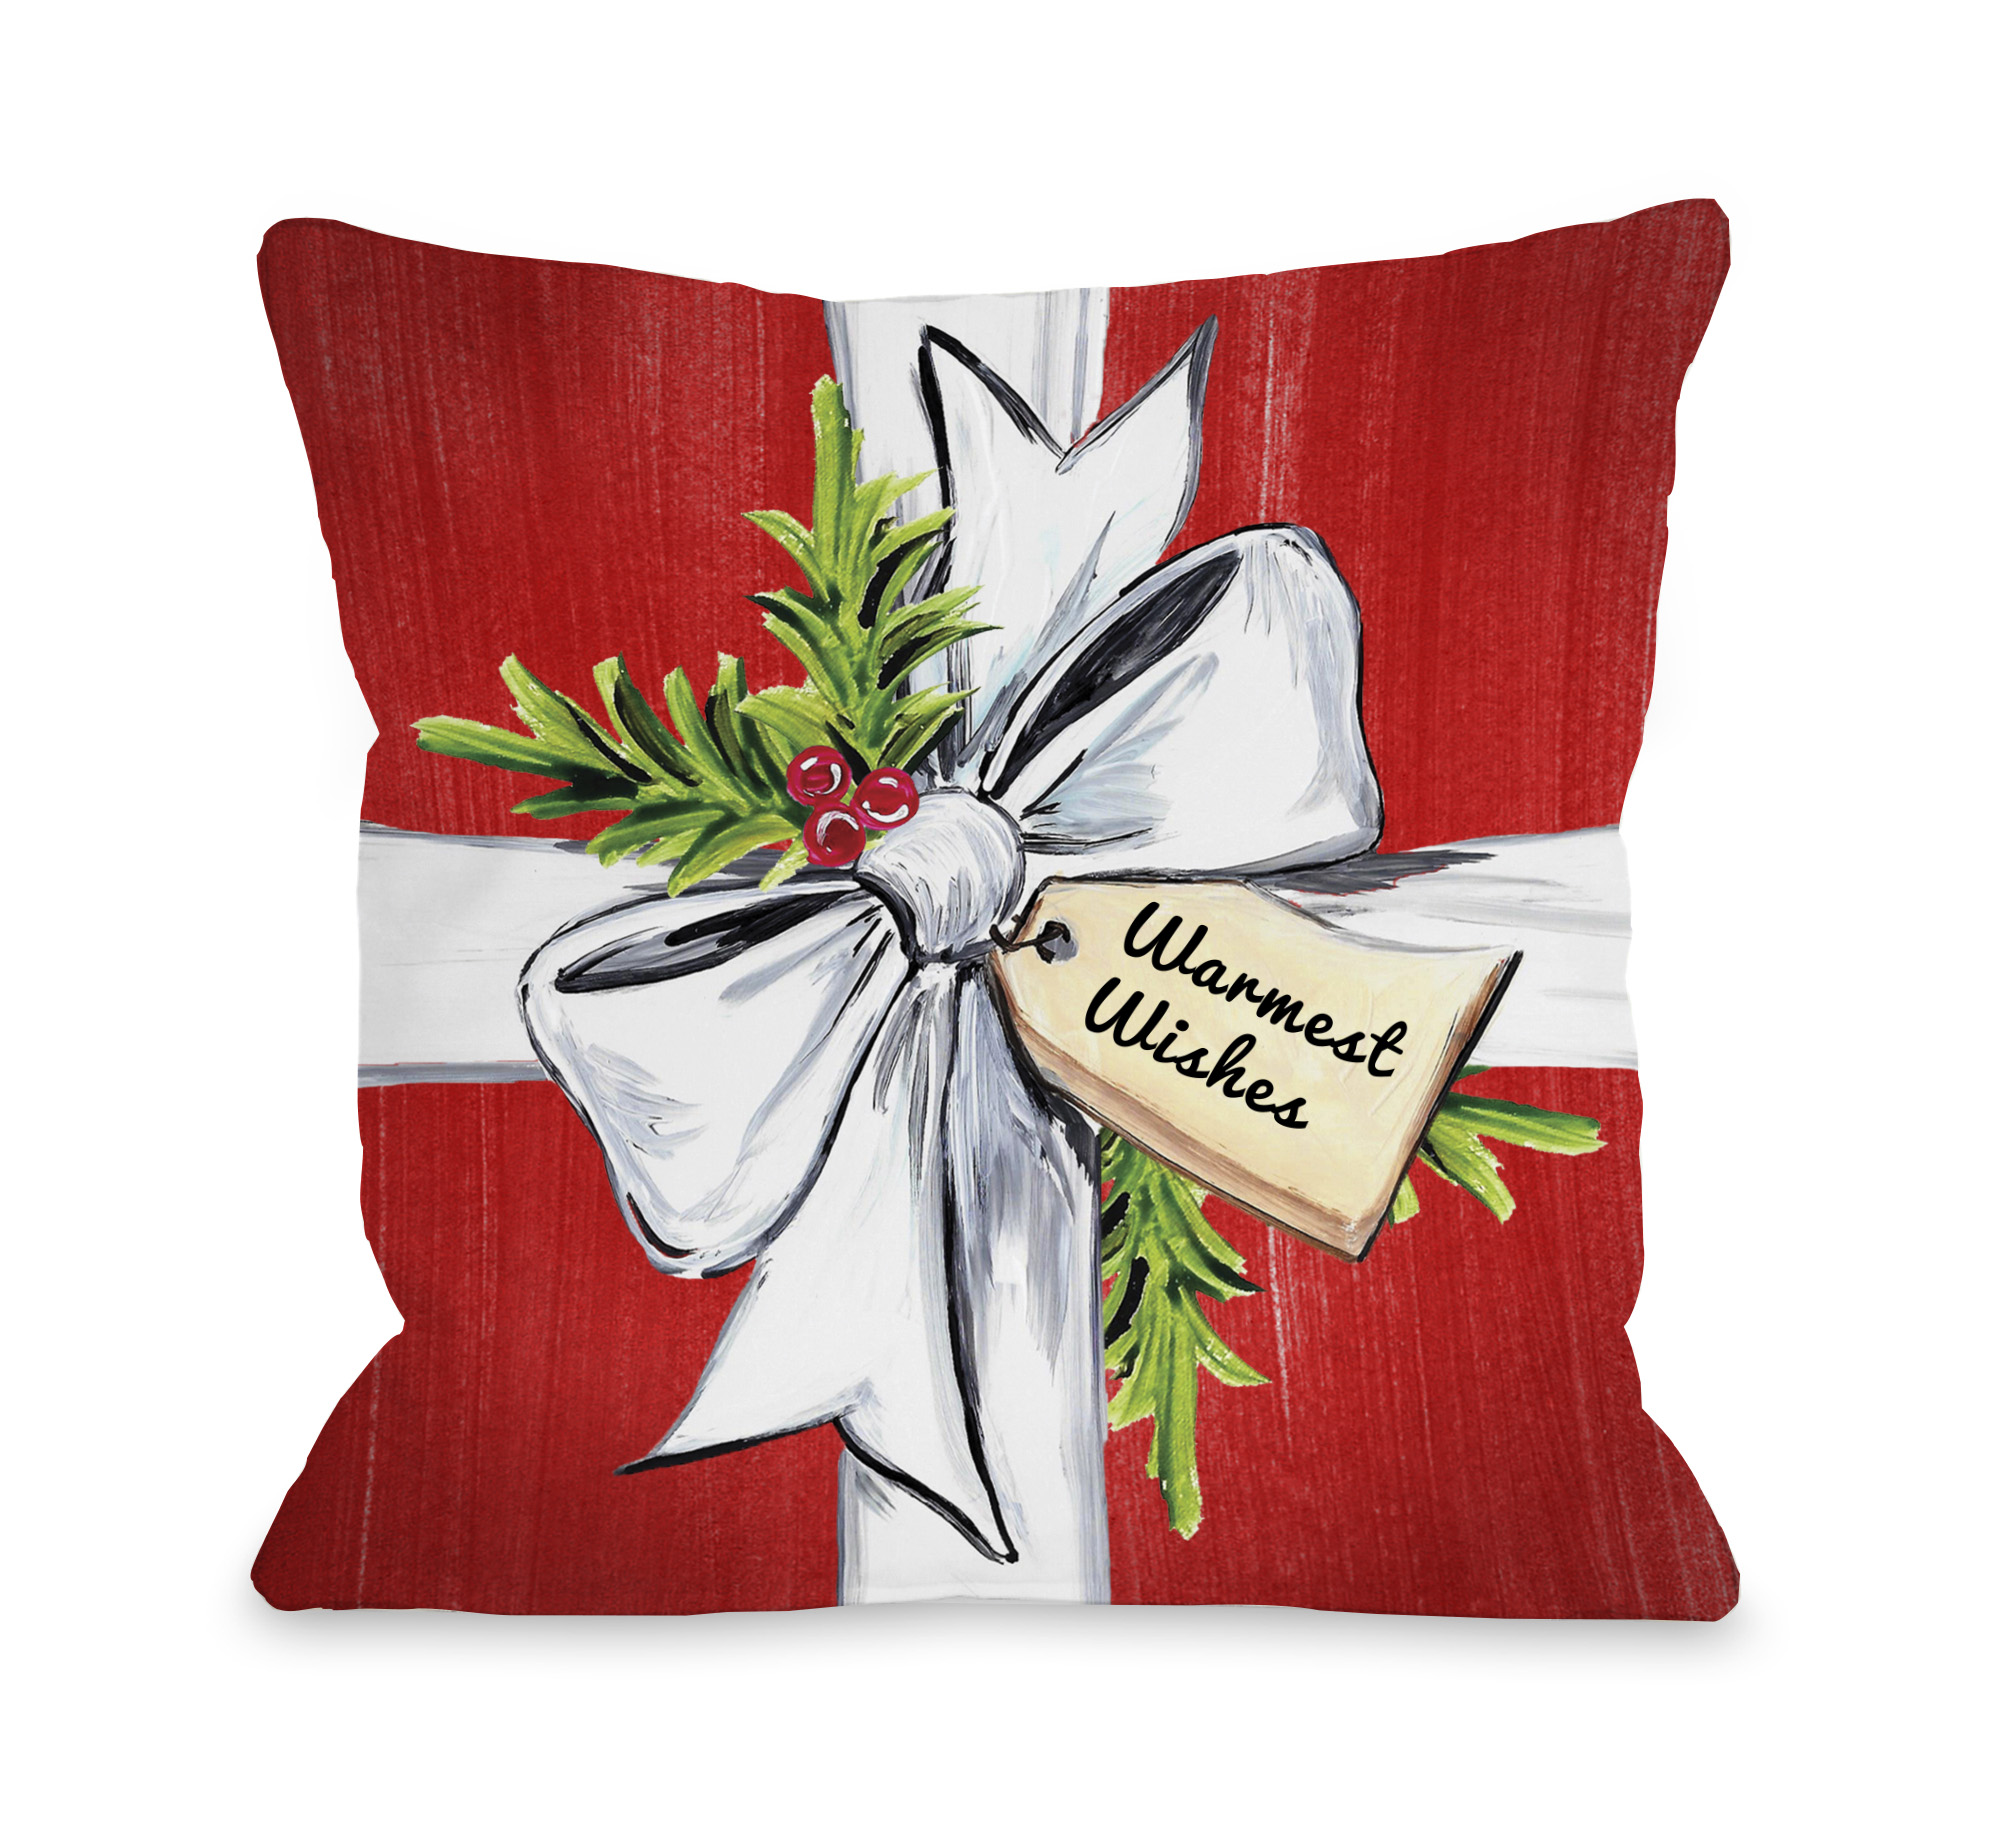 Warmest Wishes - Red Multi 18x18 Pillow by Timree